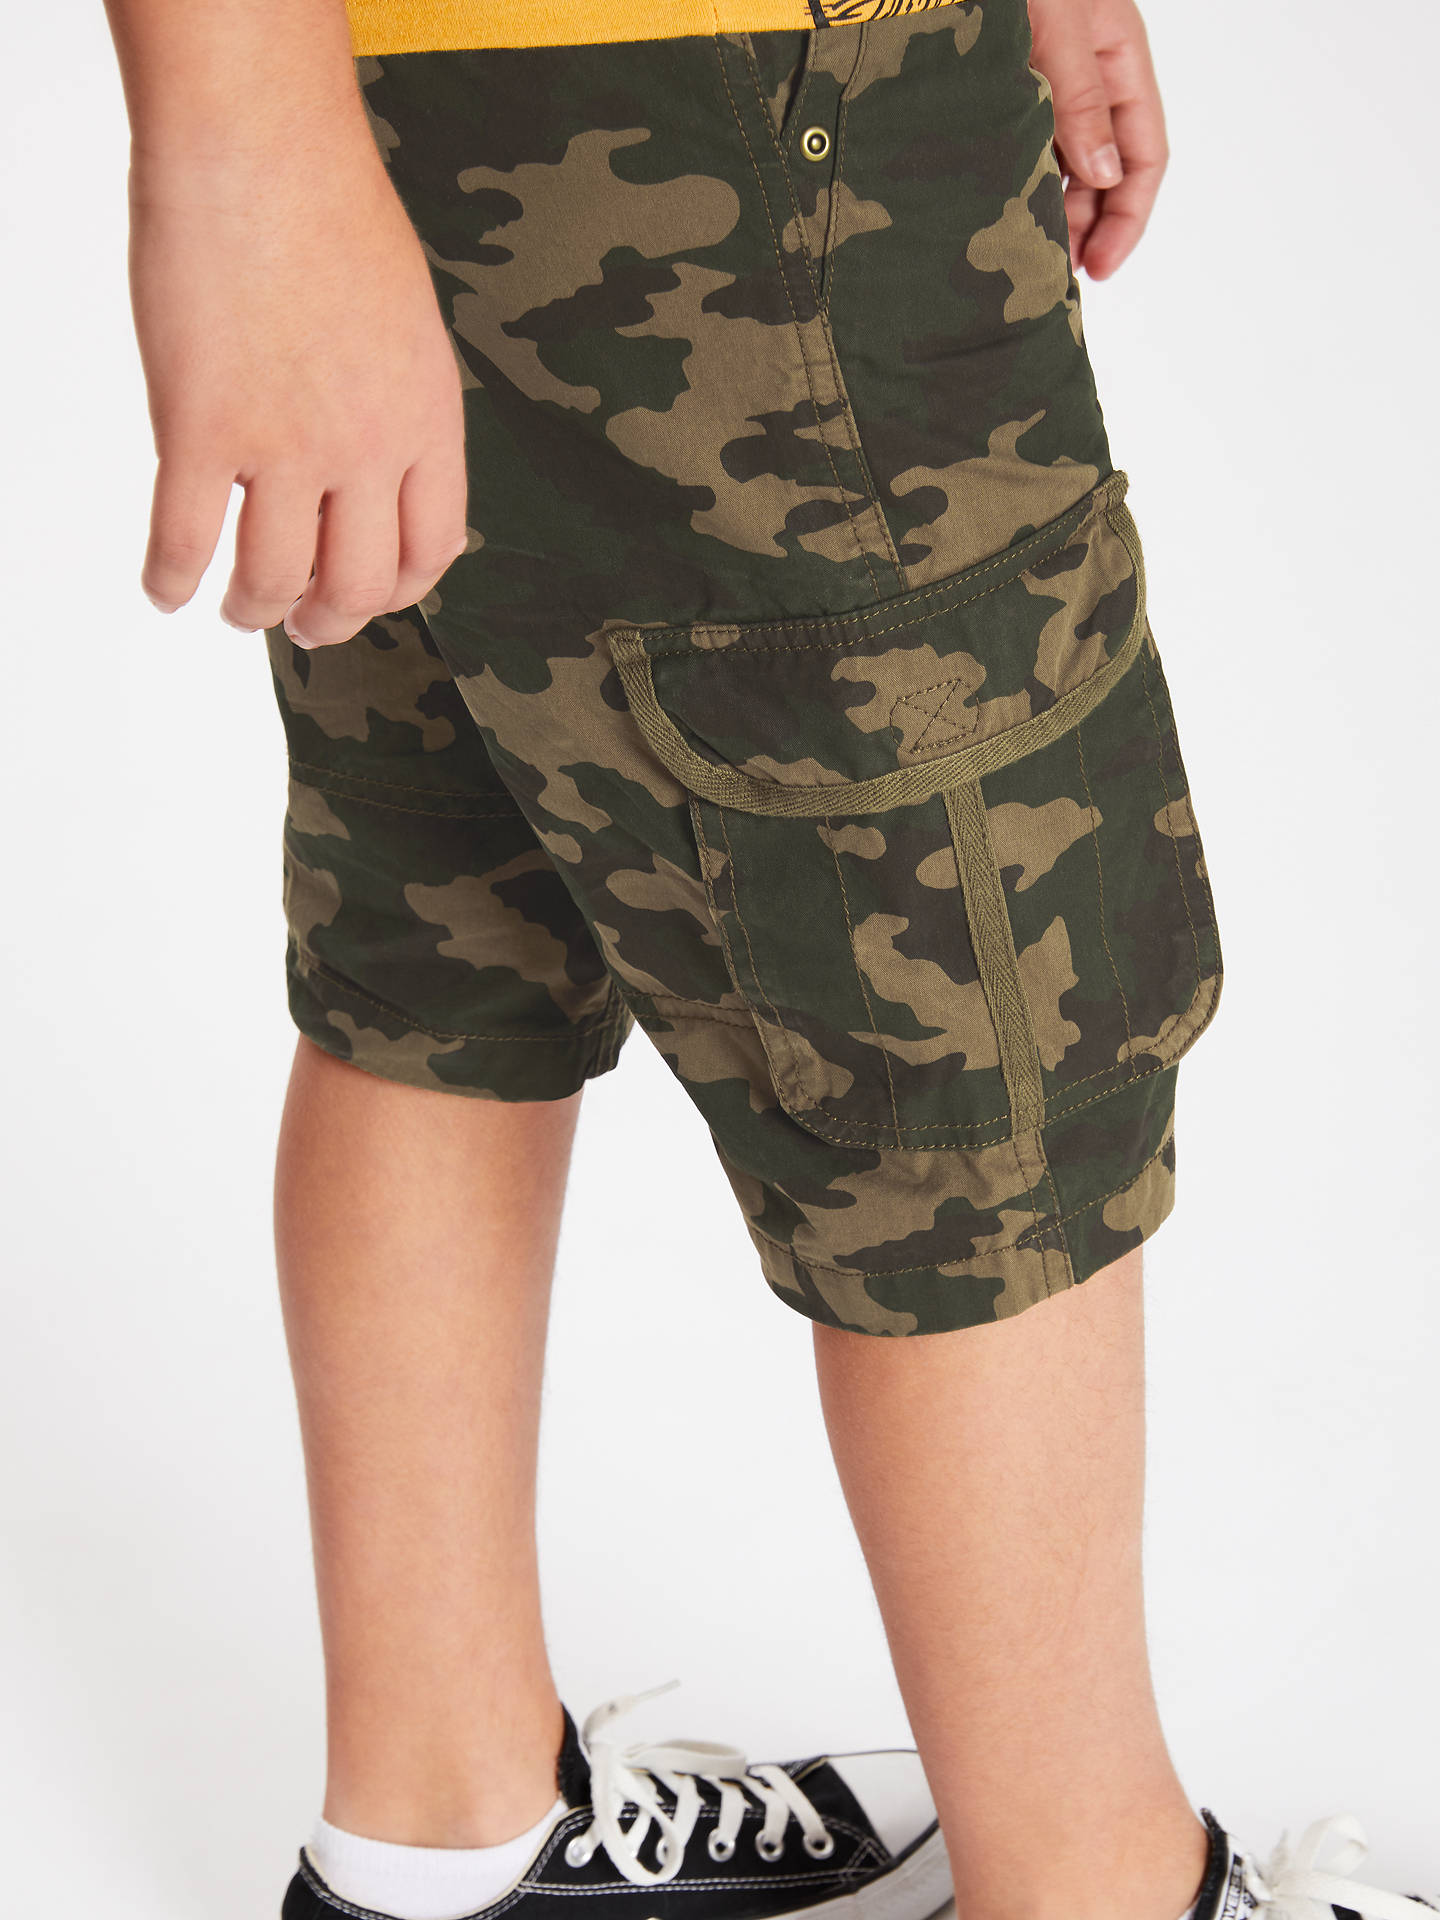 17a5ee7f4 ... Buy John Lewis & Partners Boys' Camouflage Cargo Shorts, Green, 8 years  Online